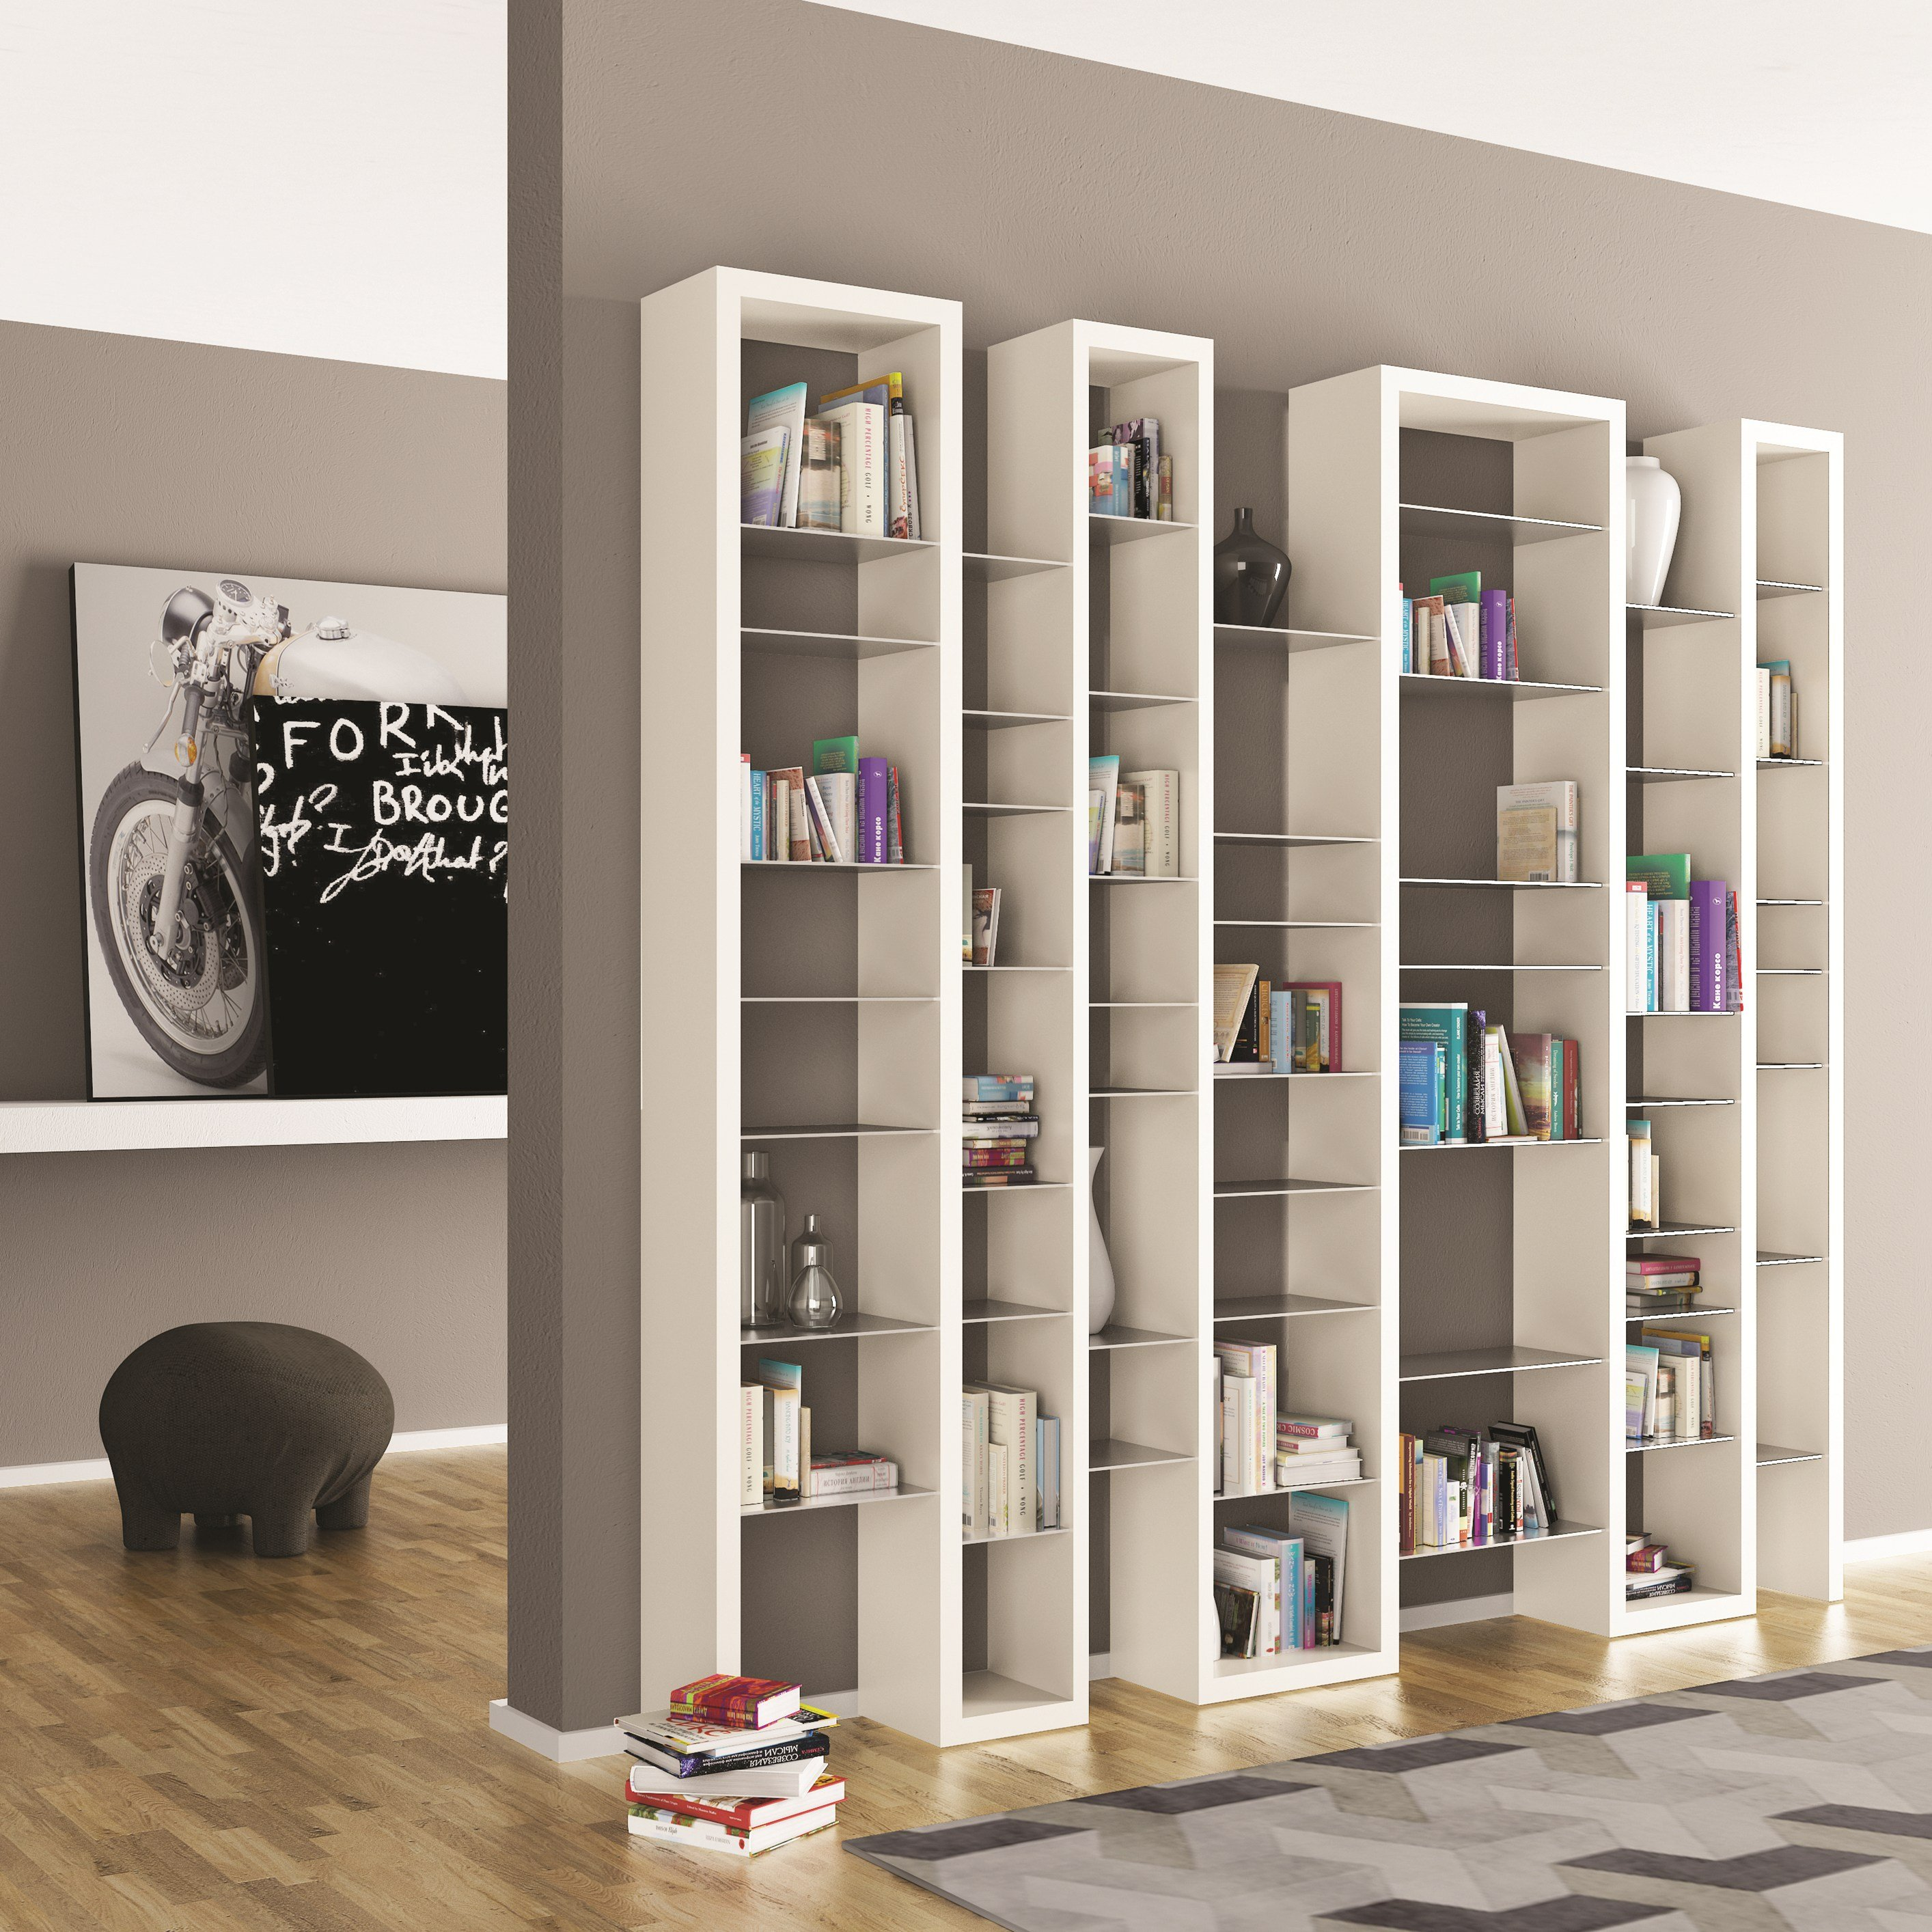 Lacquered Modular MDF Bookcase ICE MIX By ARKOF LABODESIGN